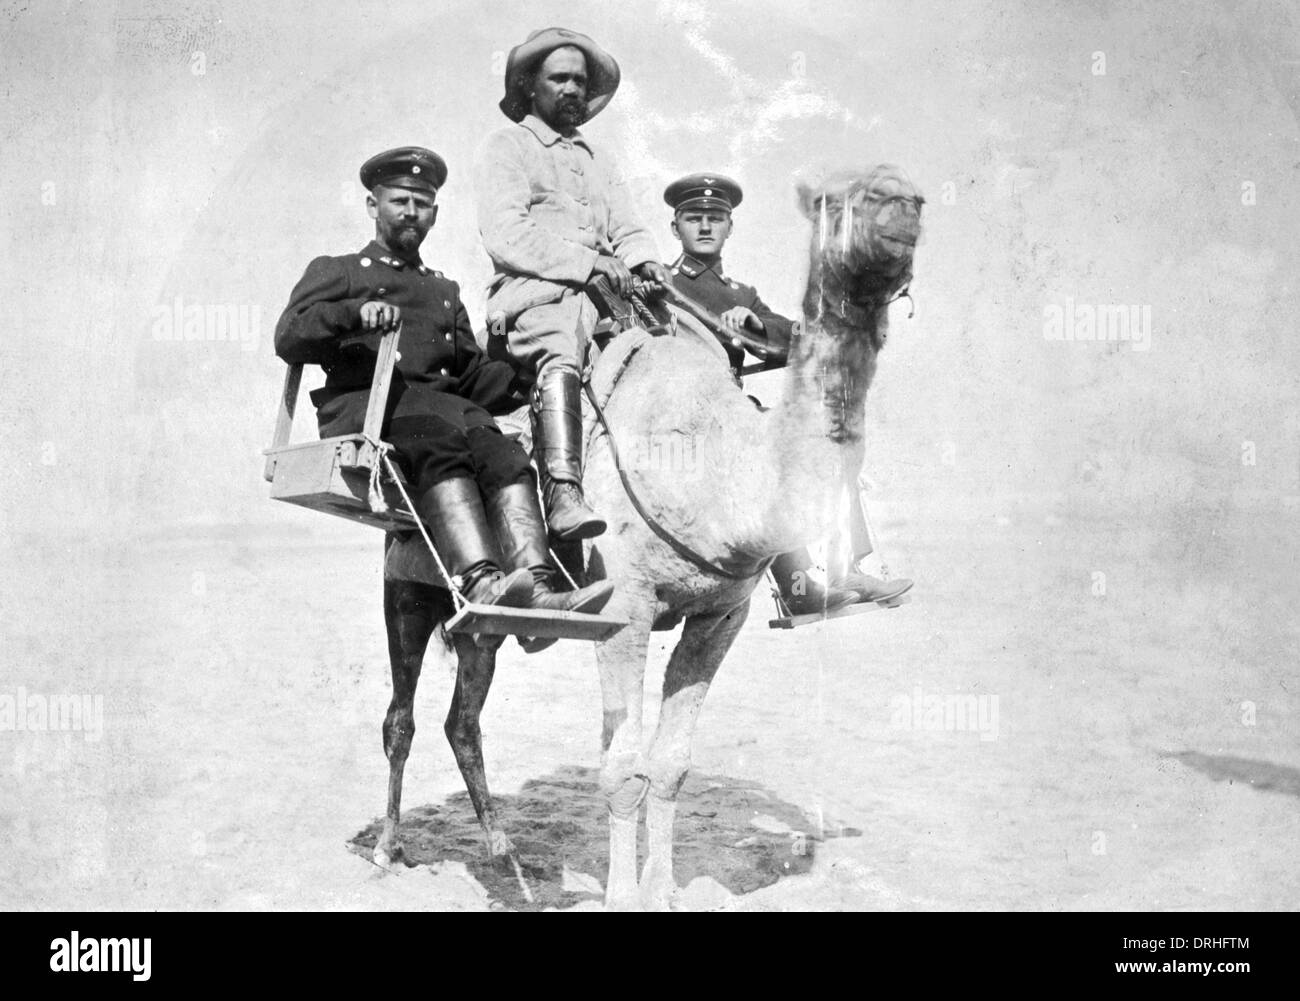 German soldiers on a camel, South West Africa, WW1 - Stock Image